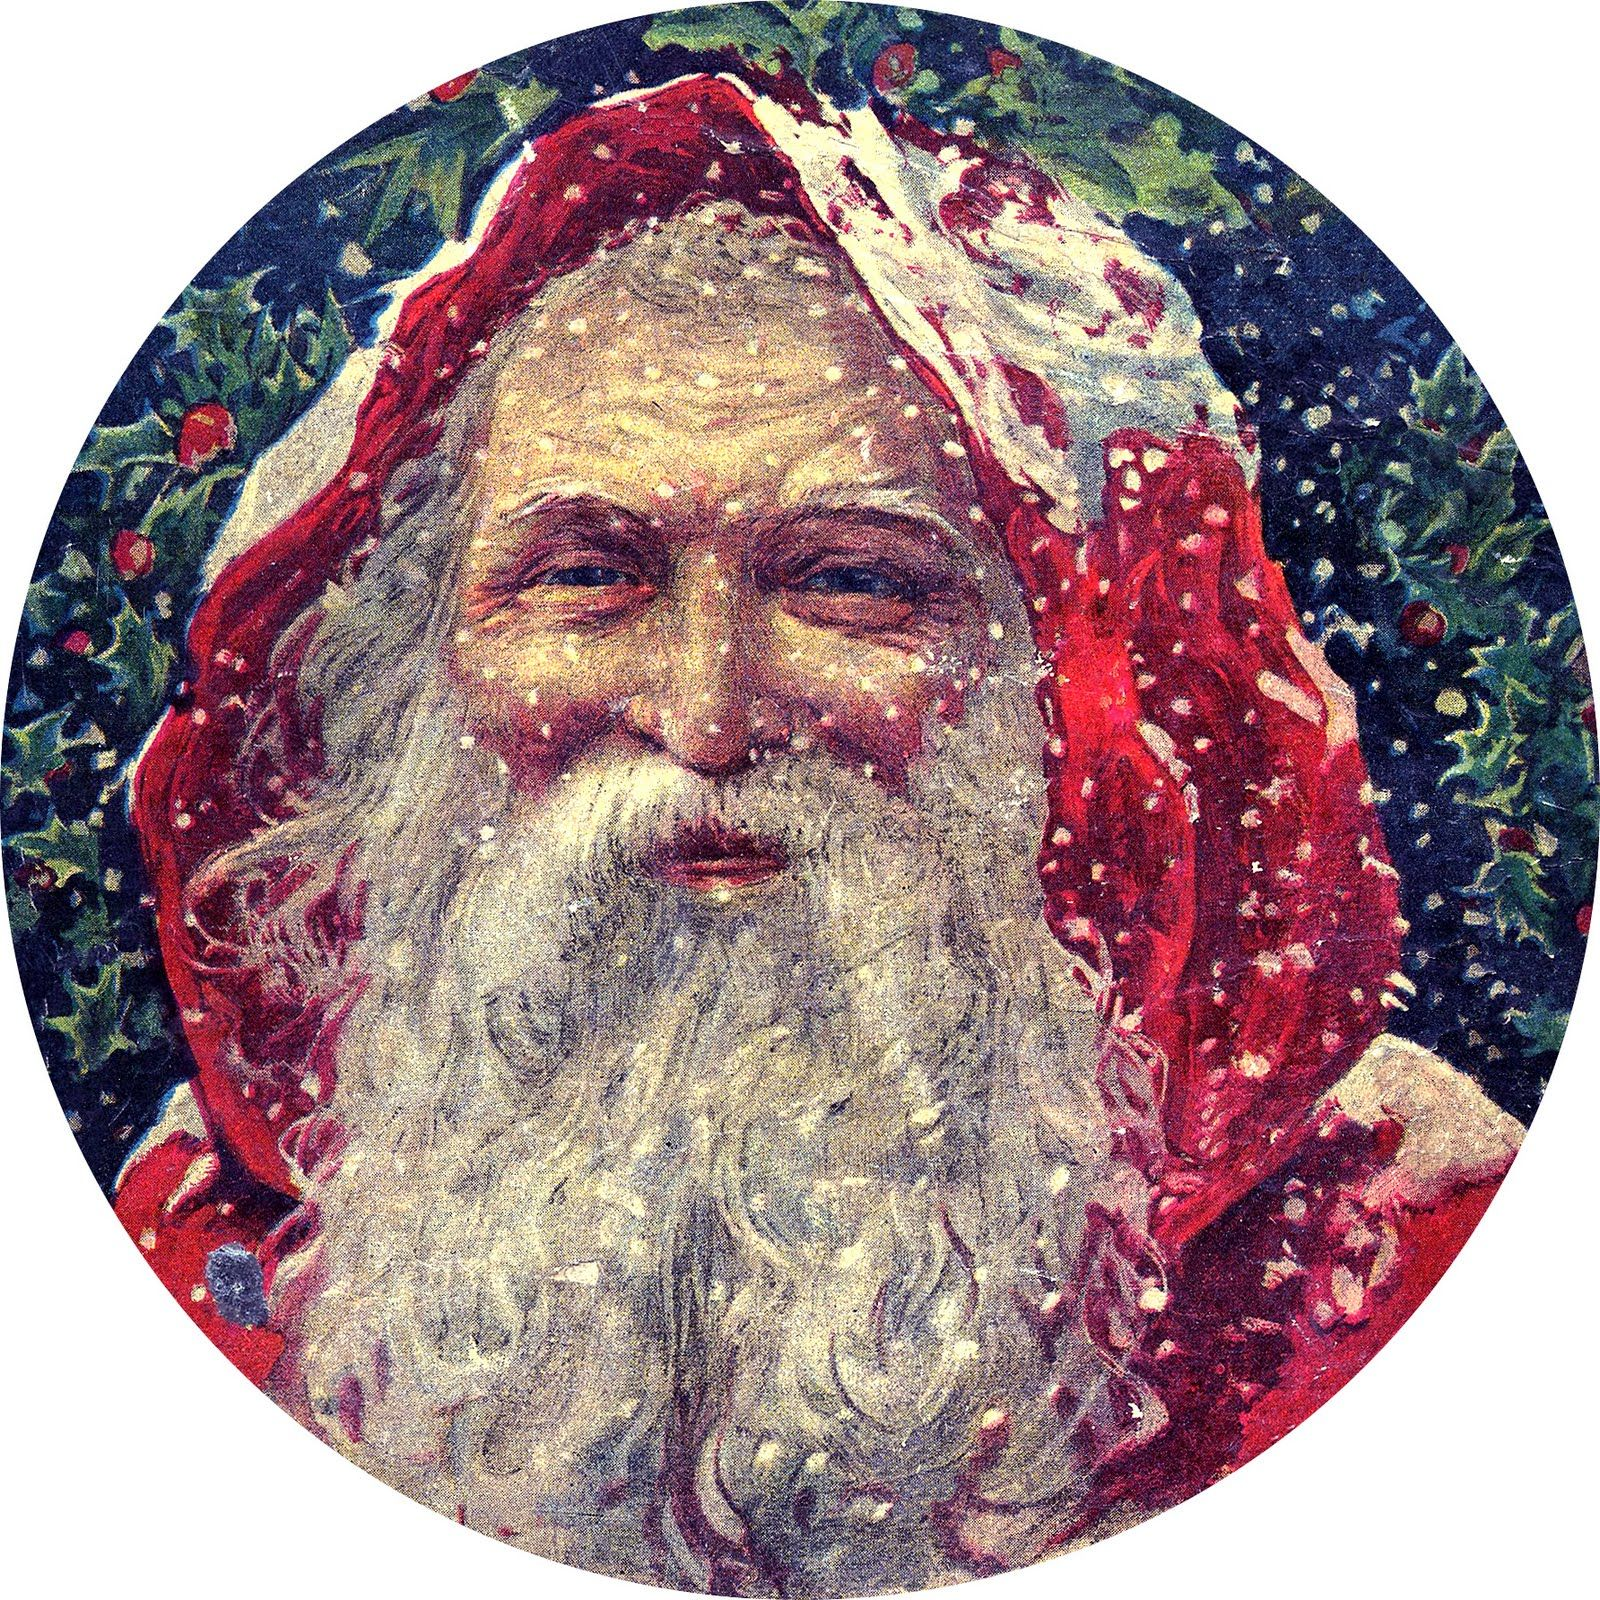 Victorian Father Christmas Decorations: Vintage Christmas - Classic Victorian Santa